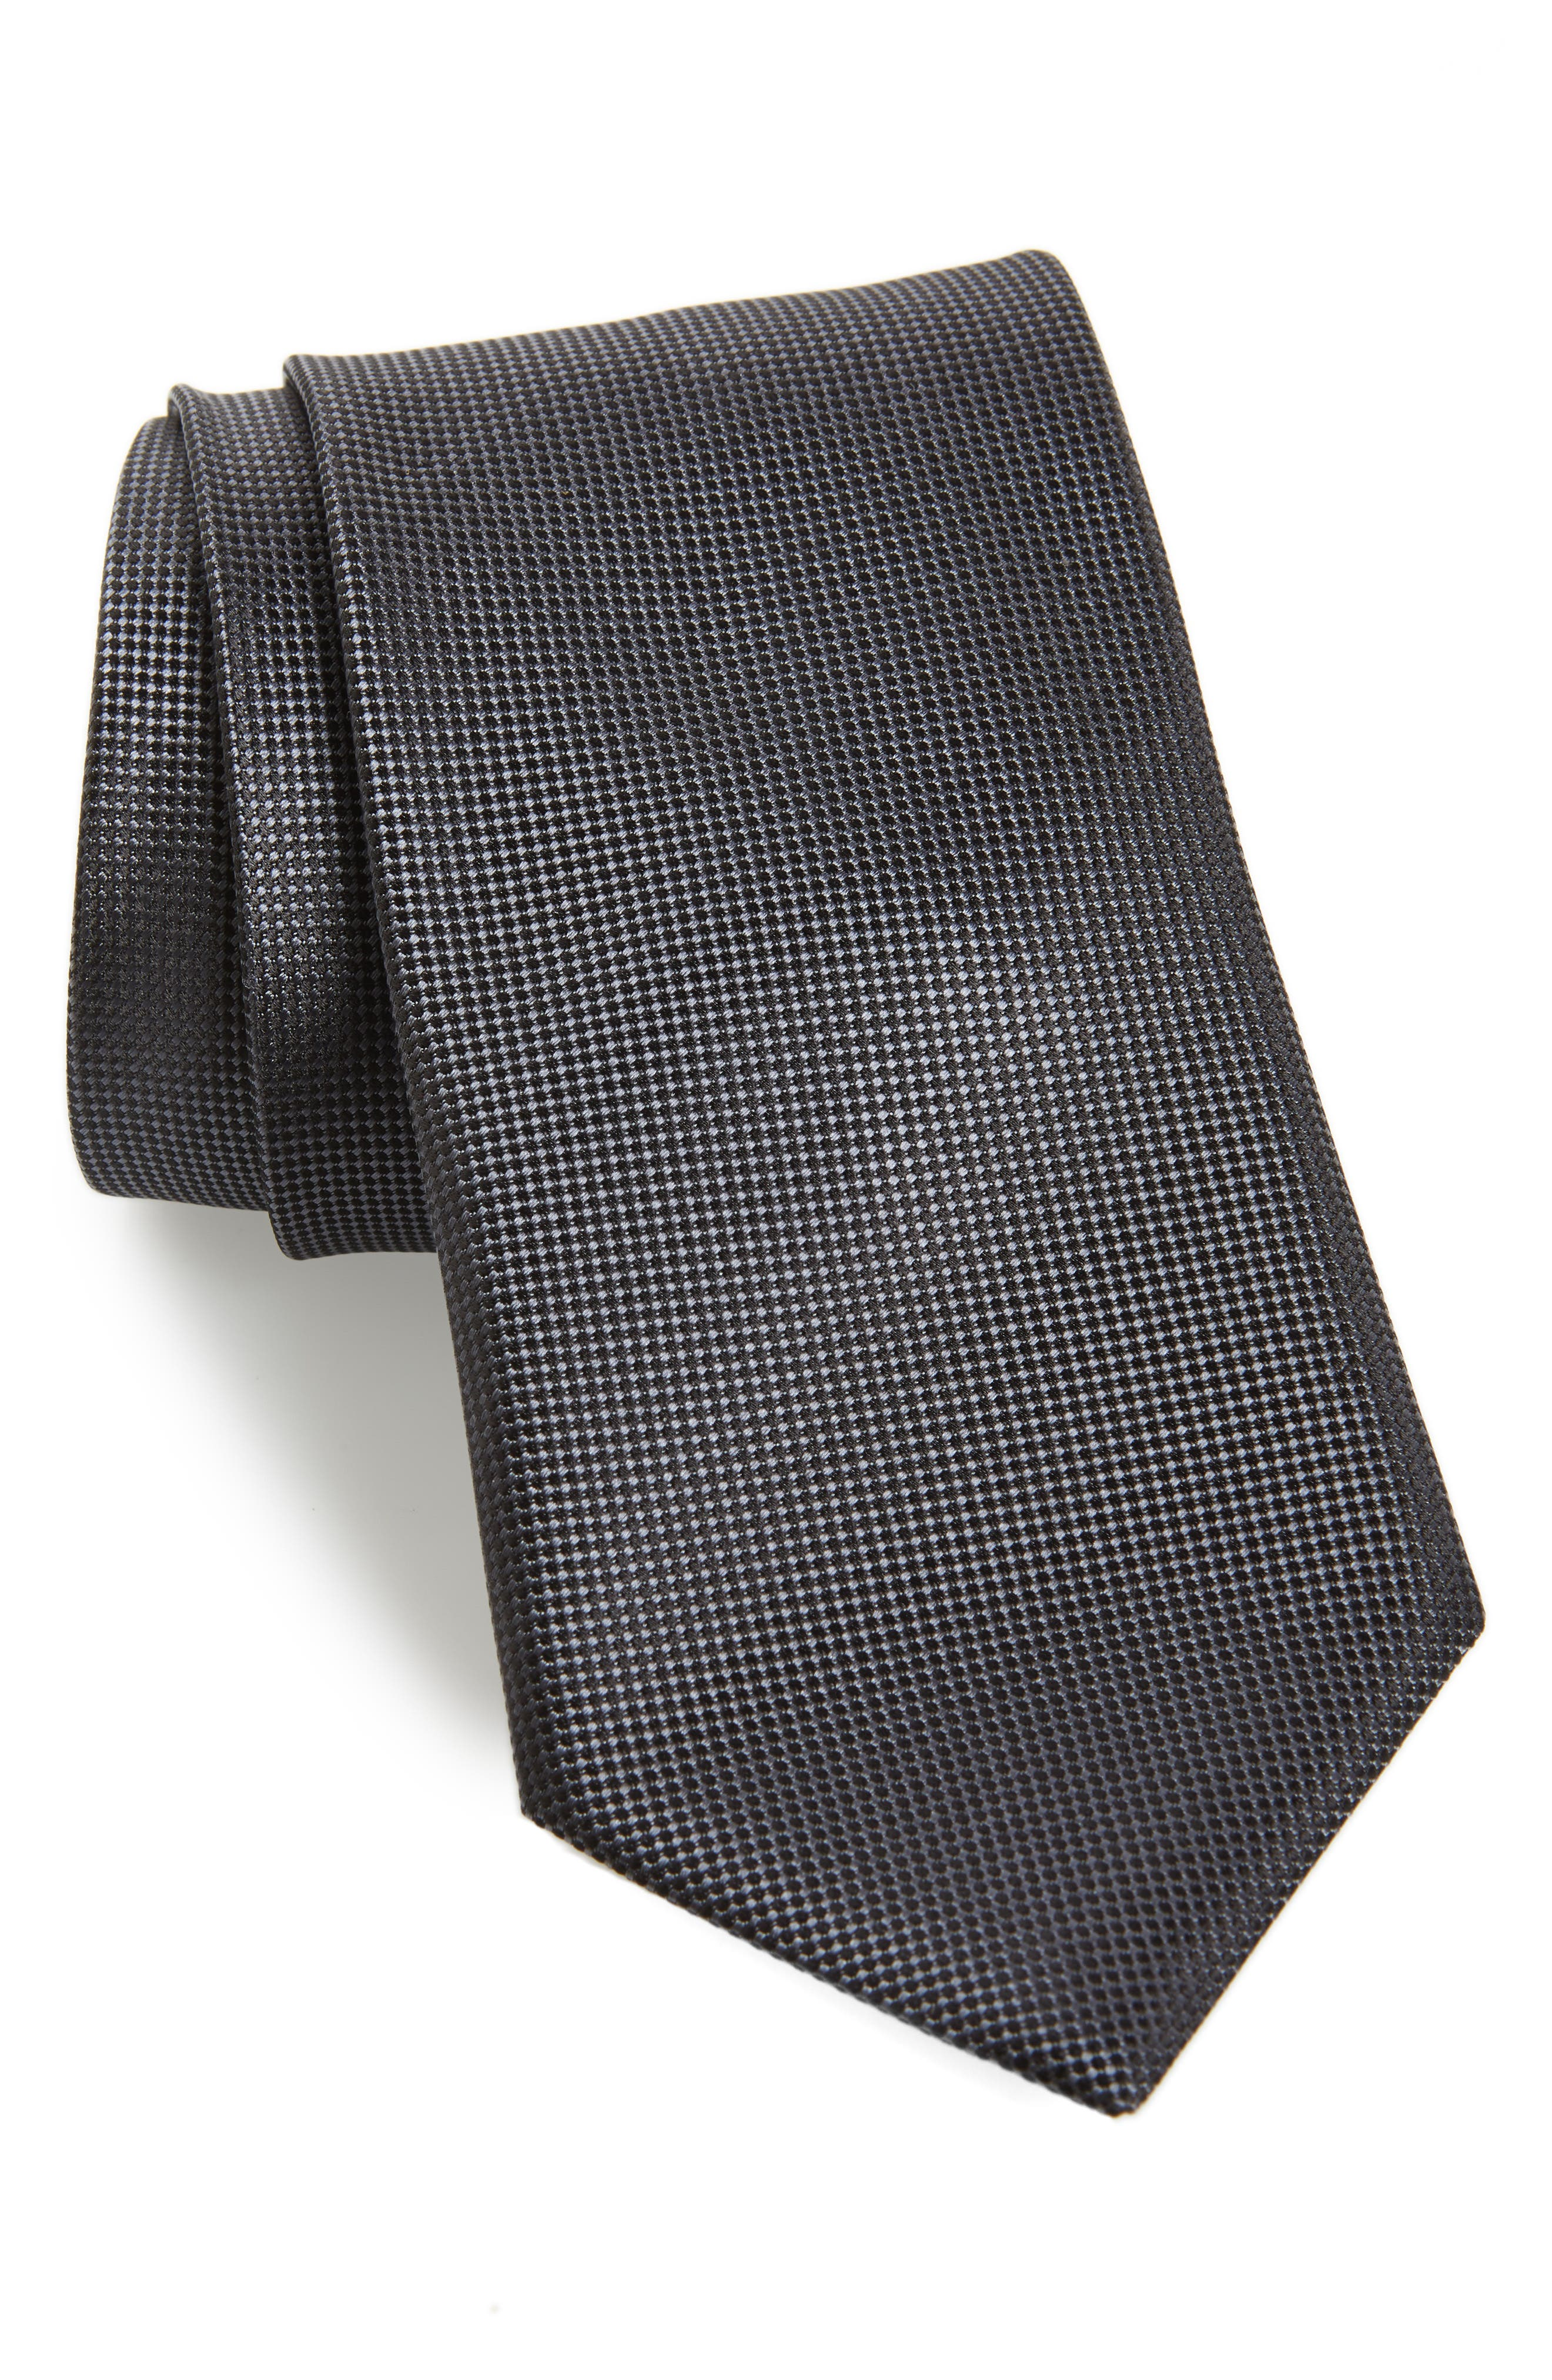 CANALI, Solid Silk Tie, Main thumbnail 1, color, BLACK